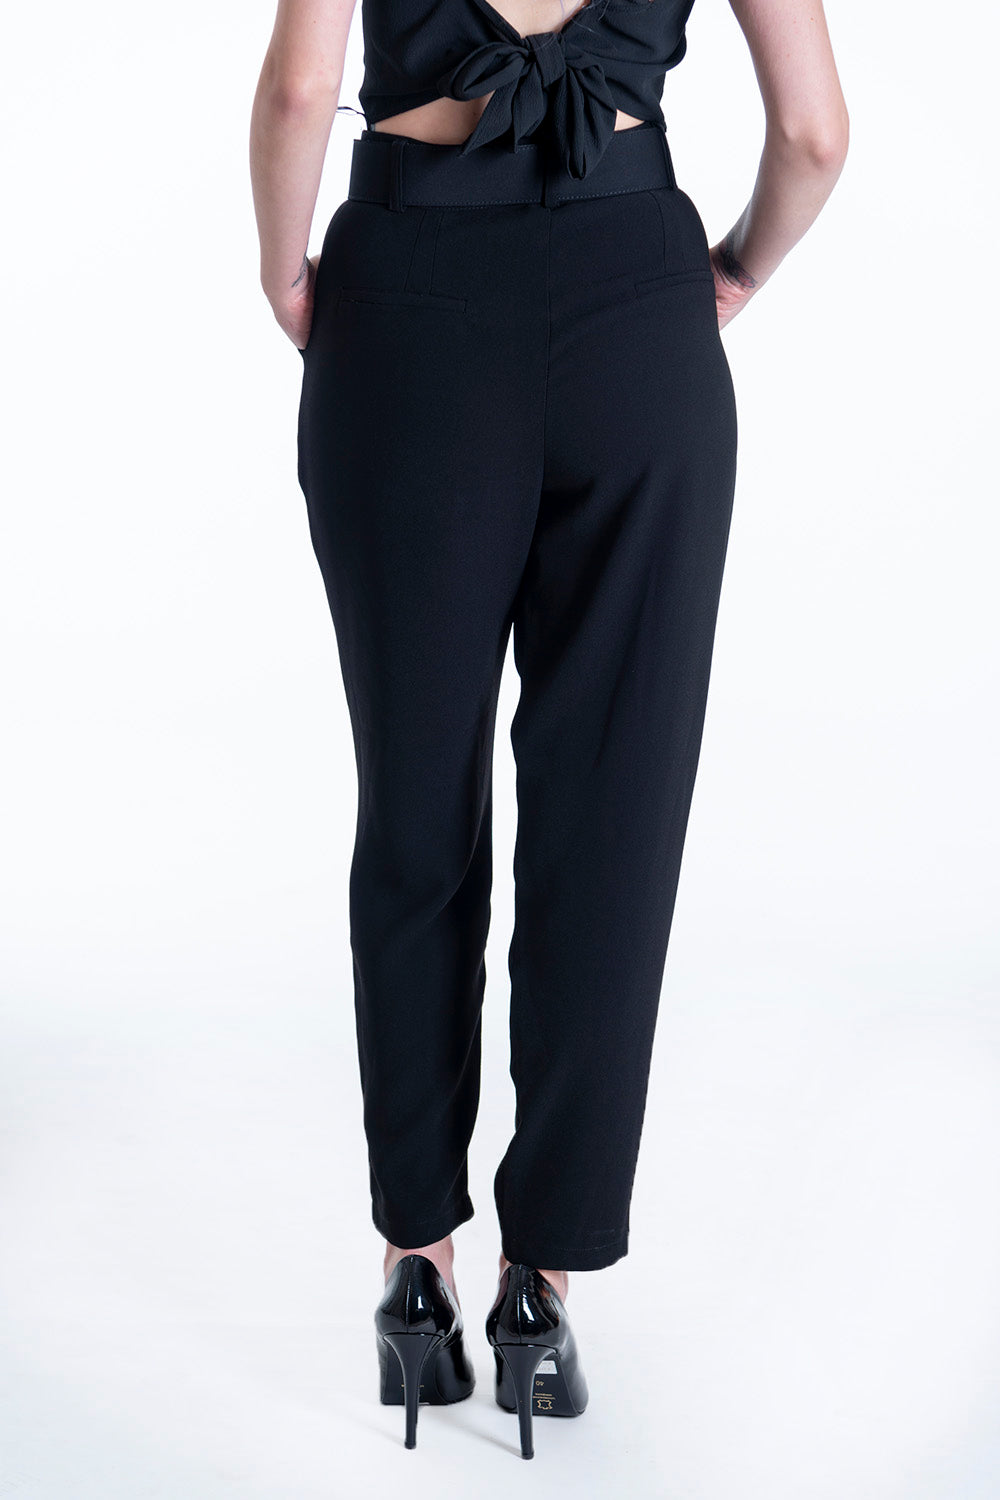 Milkwhite high waist suited trousers with belt